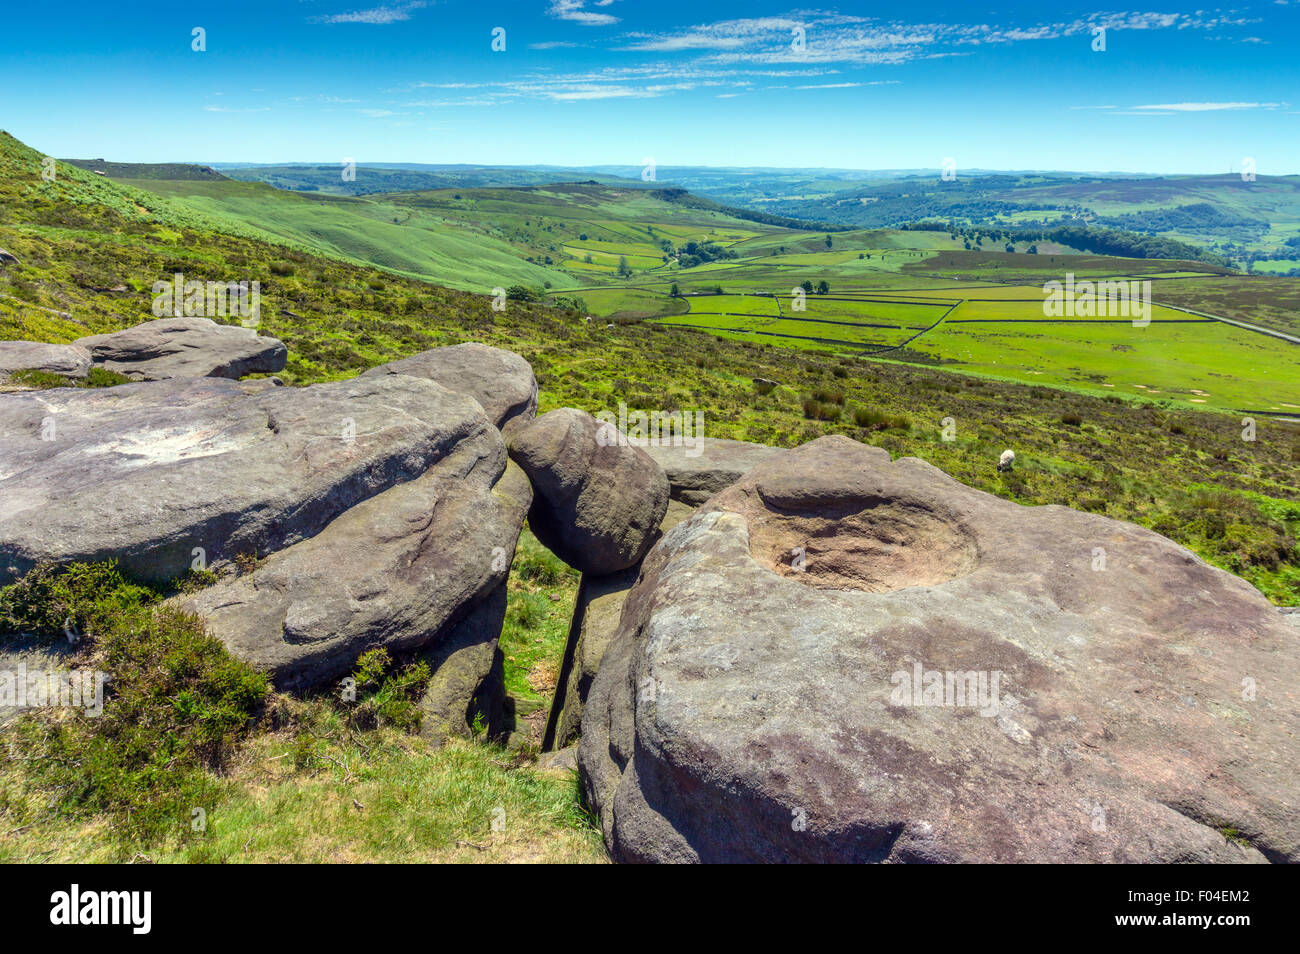 View west from gritstone cliff of Stanage Edge, Peak District, National Park, Derbyshire with boulders in foreground - Stock Image